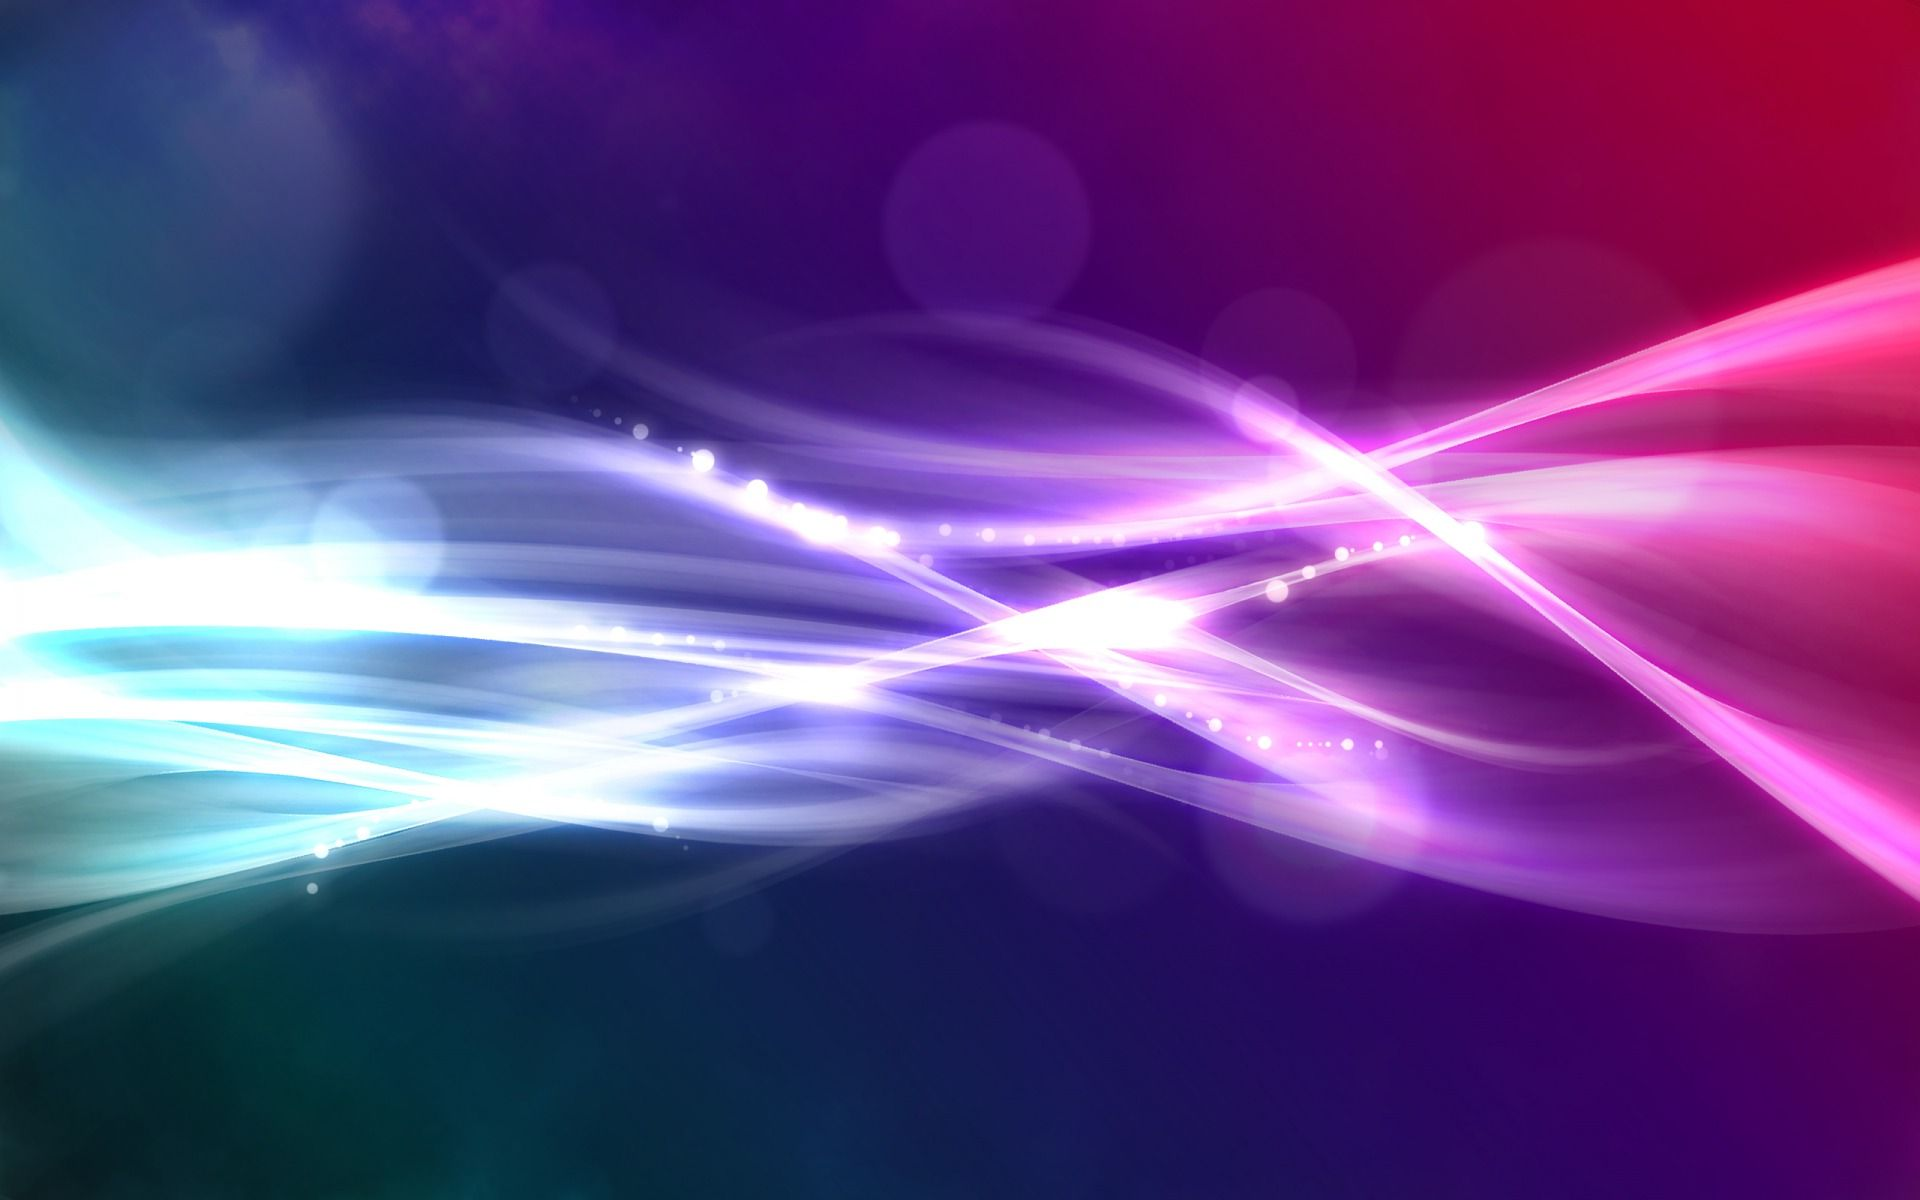 Abstract Light Wallpapers Top Free Abstract Light